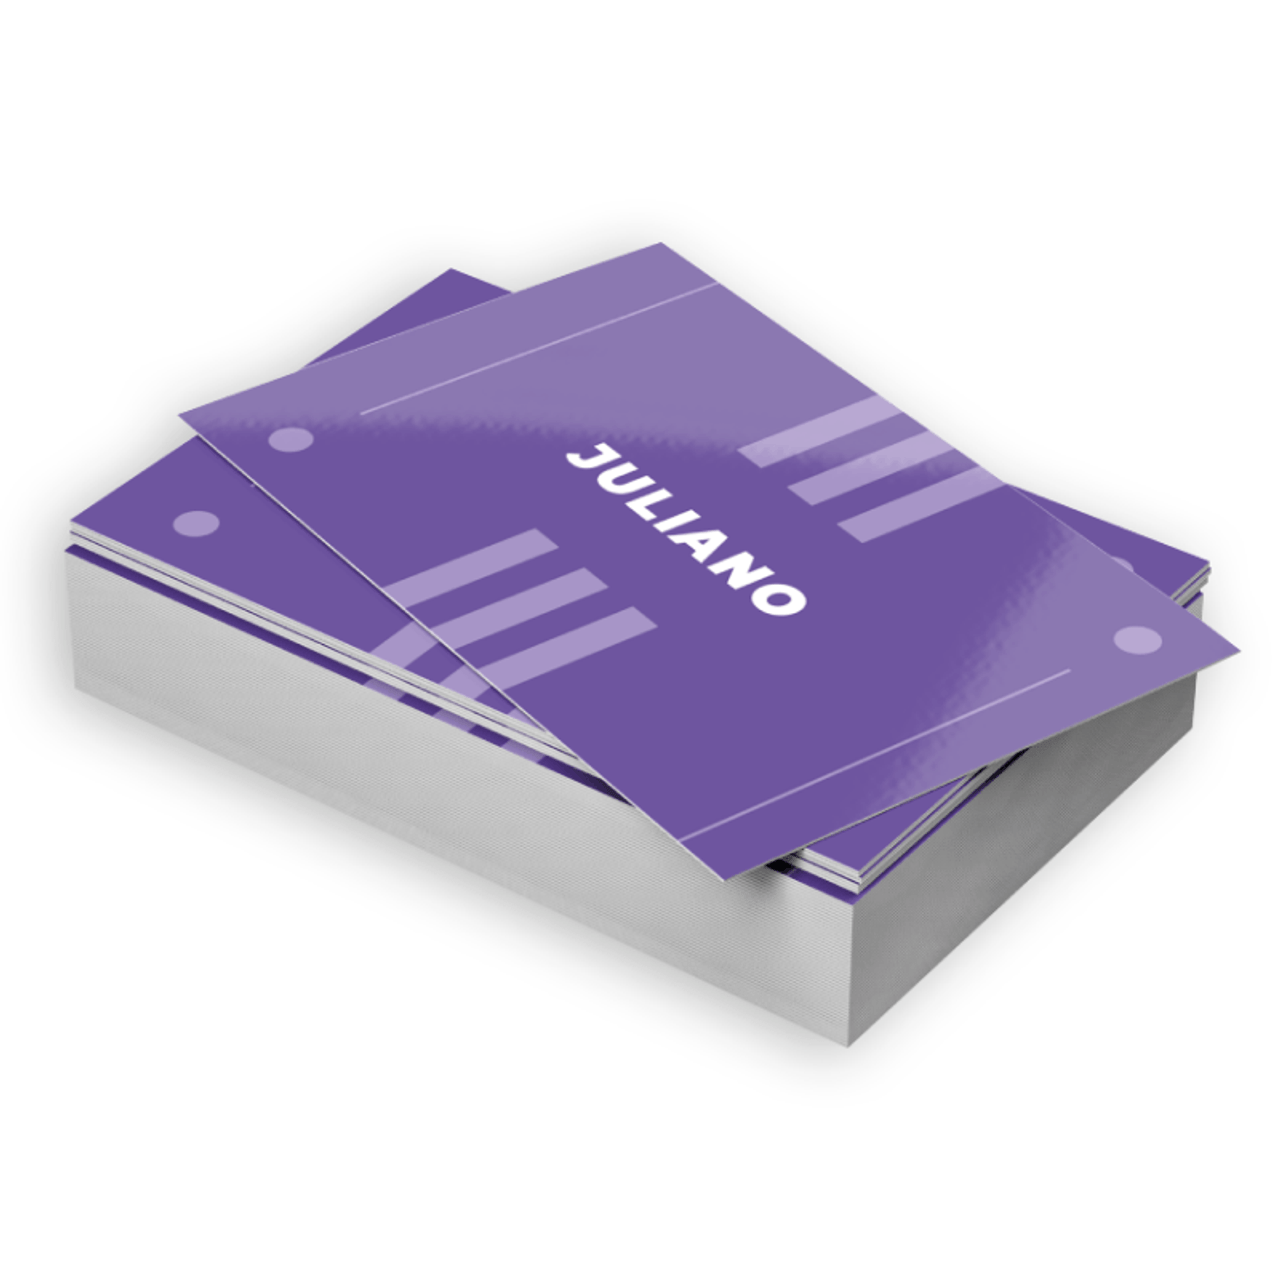 Business cards are widely used as a networking tool and a way to make a good first impression. Our 14pt Business cards with AQ have a semi-gloss look and are the most commonly ordered.